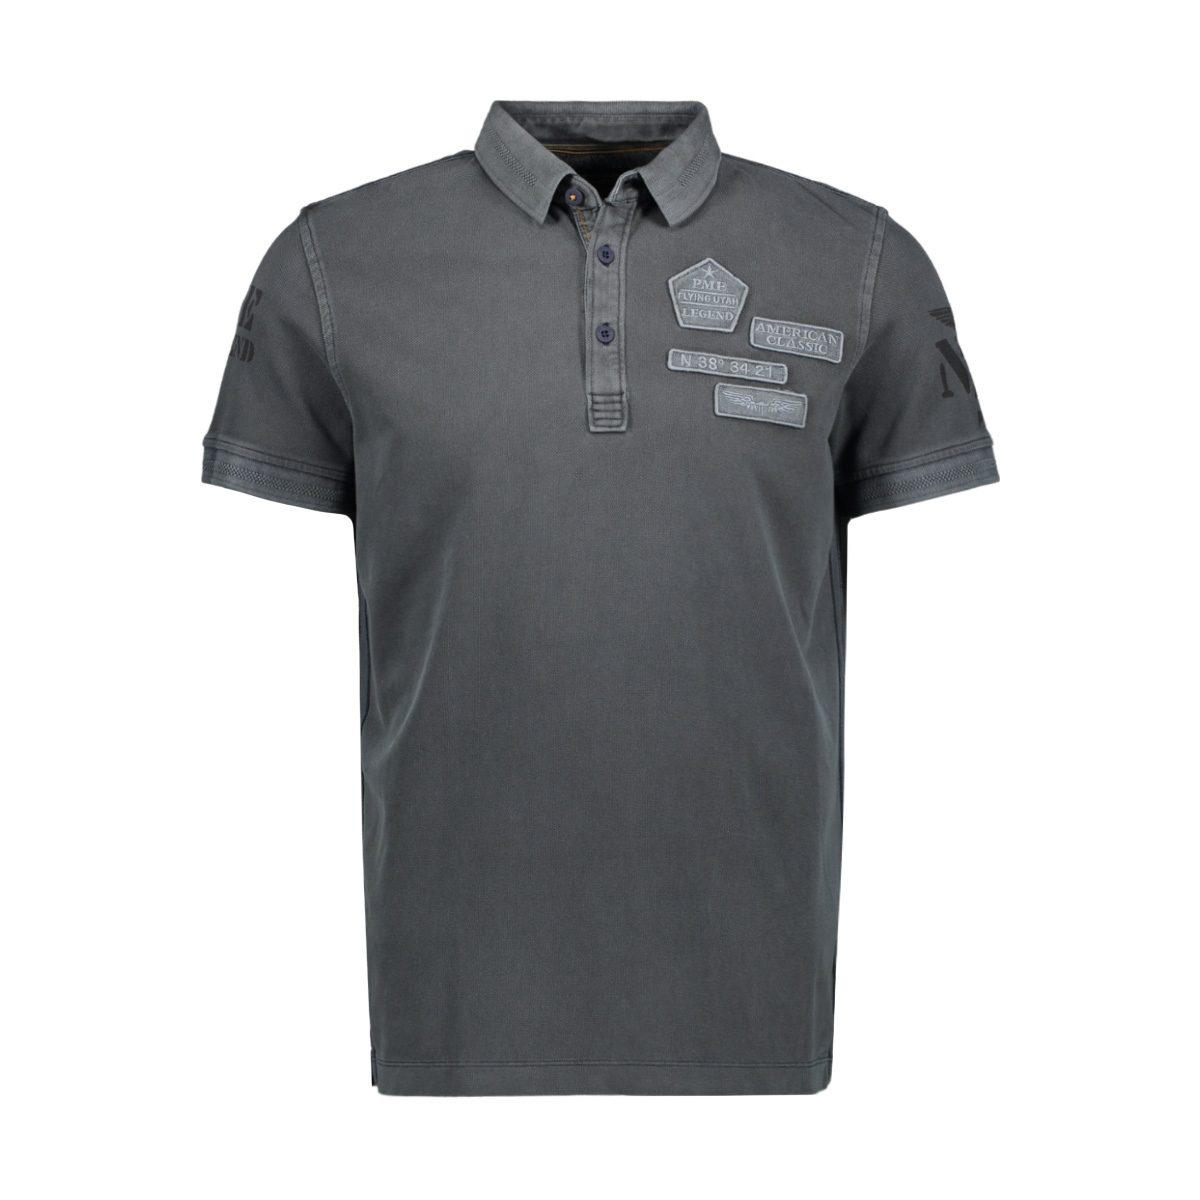 rugged pique short sleeve polo ppss204869 pme legend polo 5287